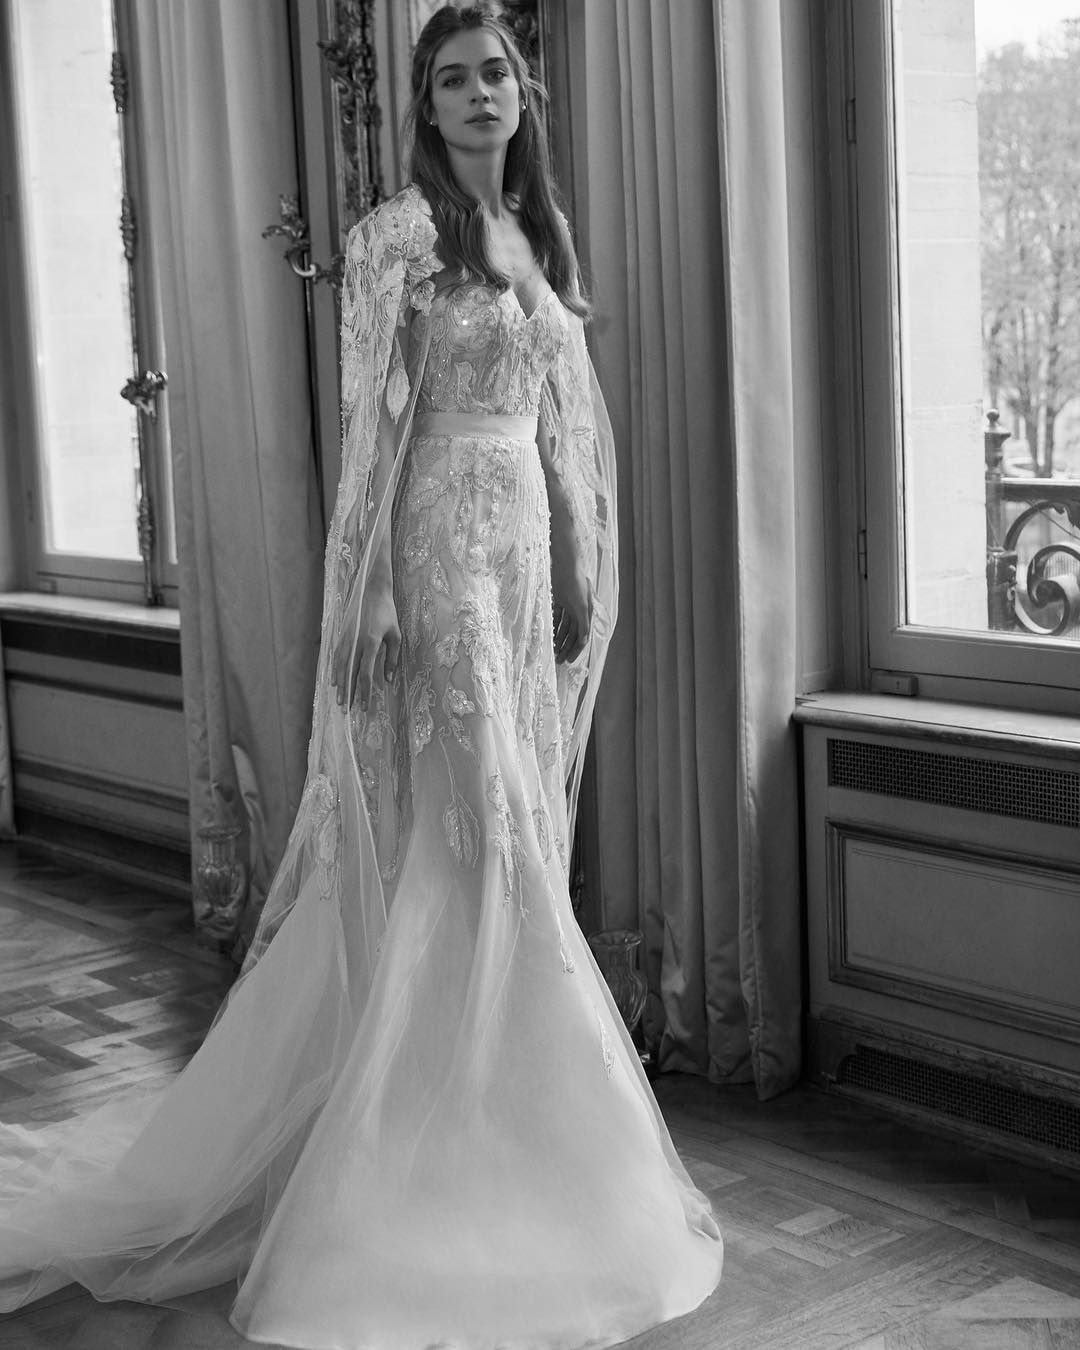 The Bridal Cape Signature Looks From The Elie Saab Bridal Ready